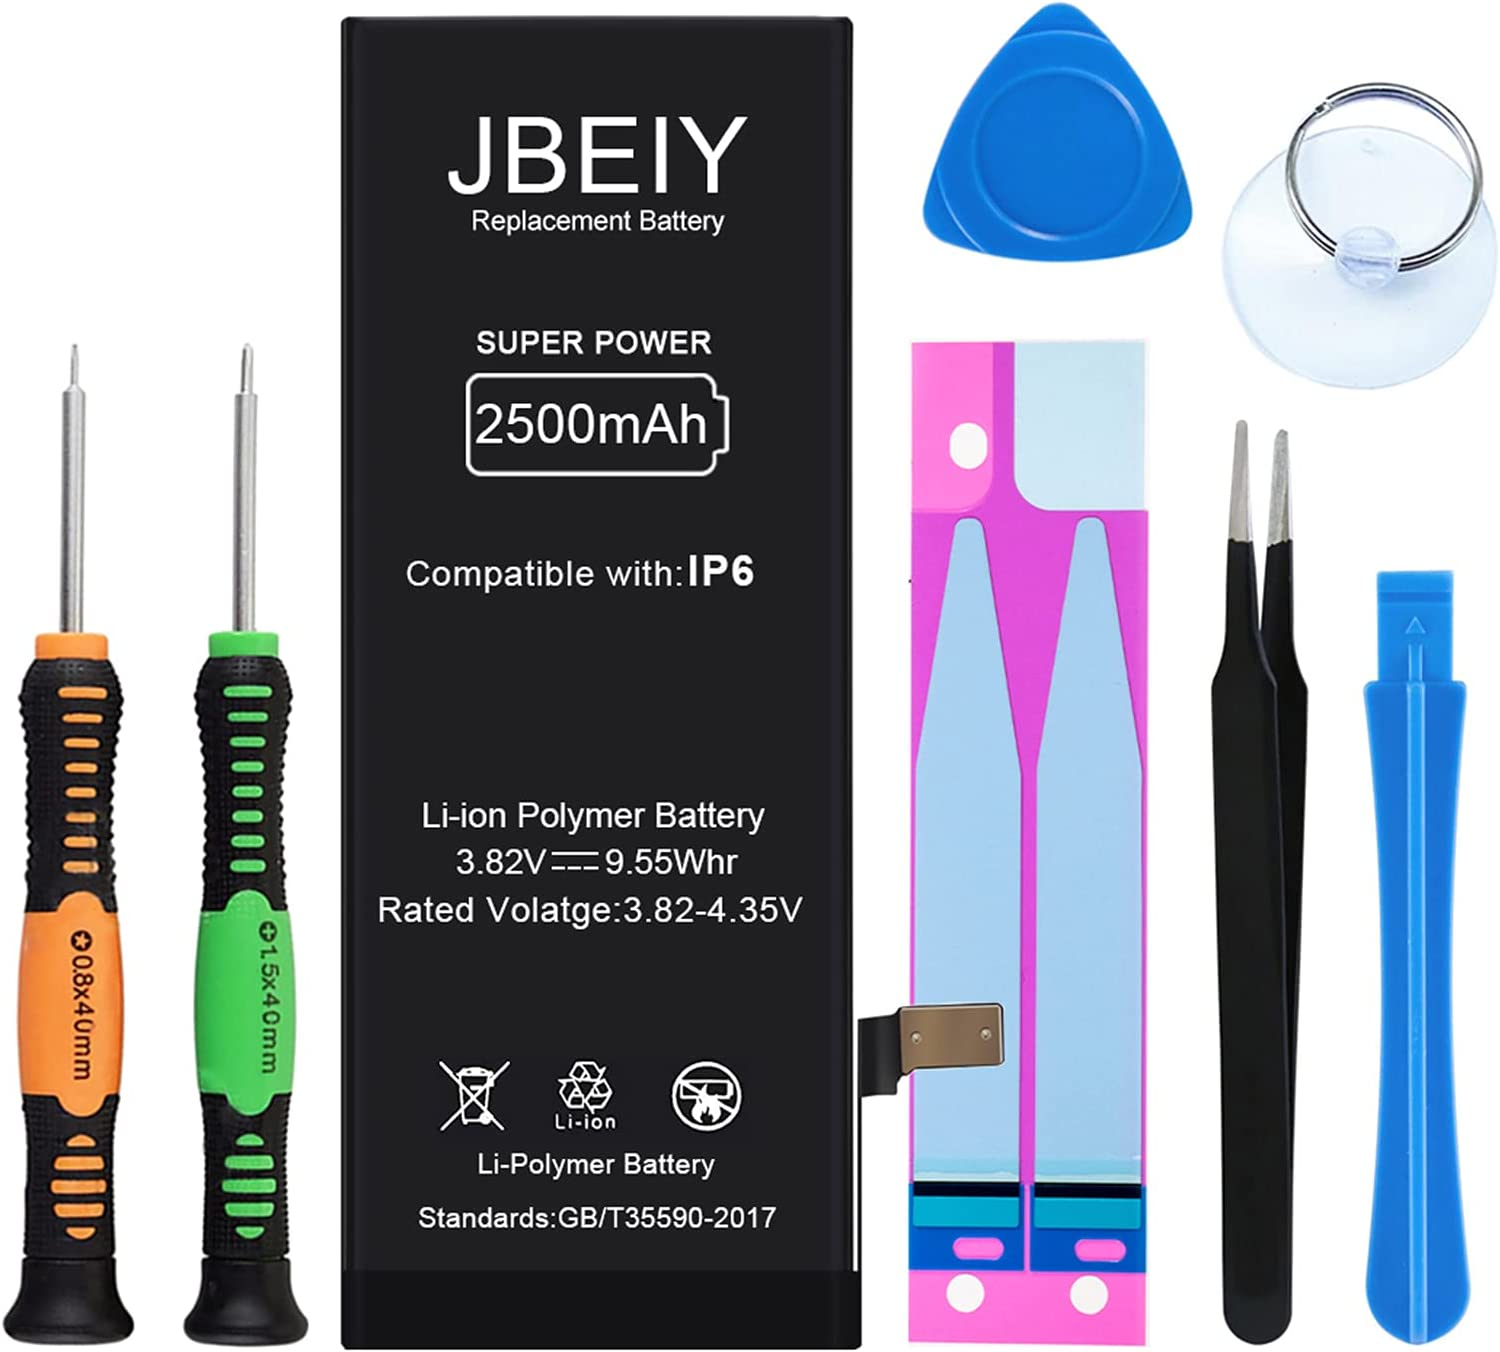 JBEIY 2500mAh Battery for iPhone 6, New 0 Cycle Super High Capacity Internal Replacement Battery, with Complete Professional Tool Kit and Instructions -1 Year Warranty